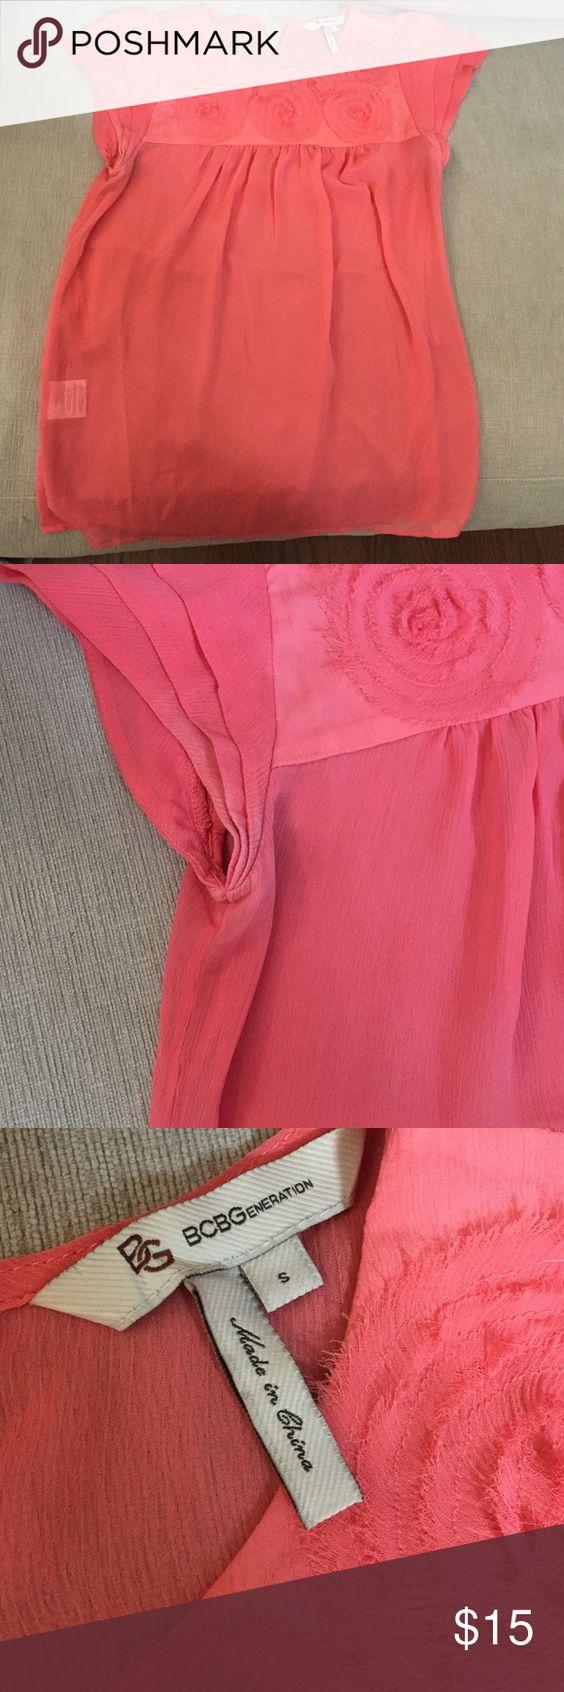 BCBGeneration top Shear top, well used with some wear at arms (see pics) but overall in good condition. 100% polyester. Blush color. BCBGeneration Tops Blouses